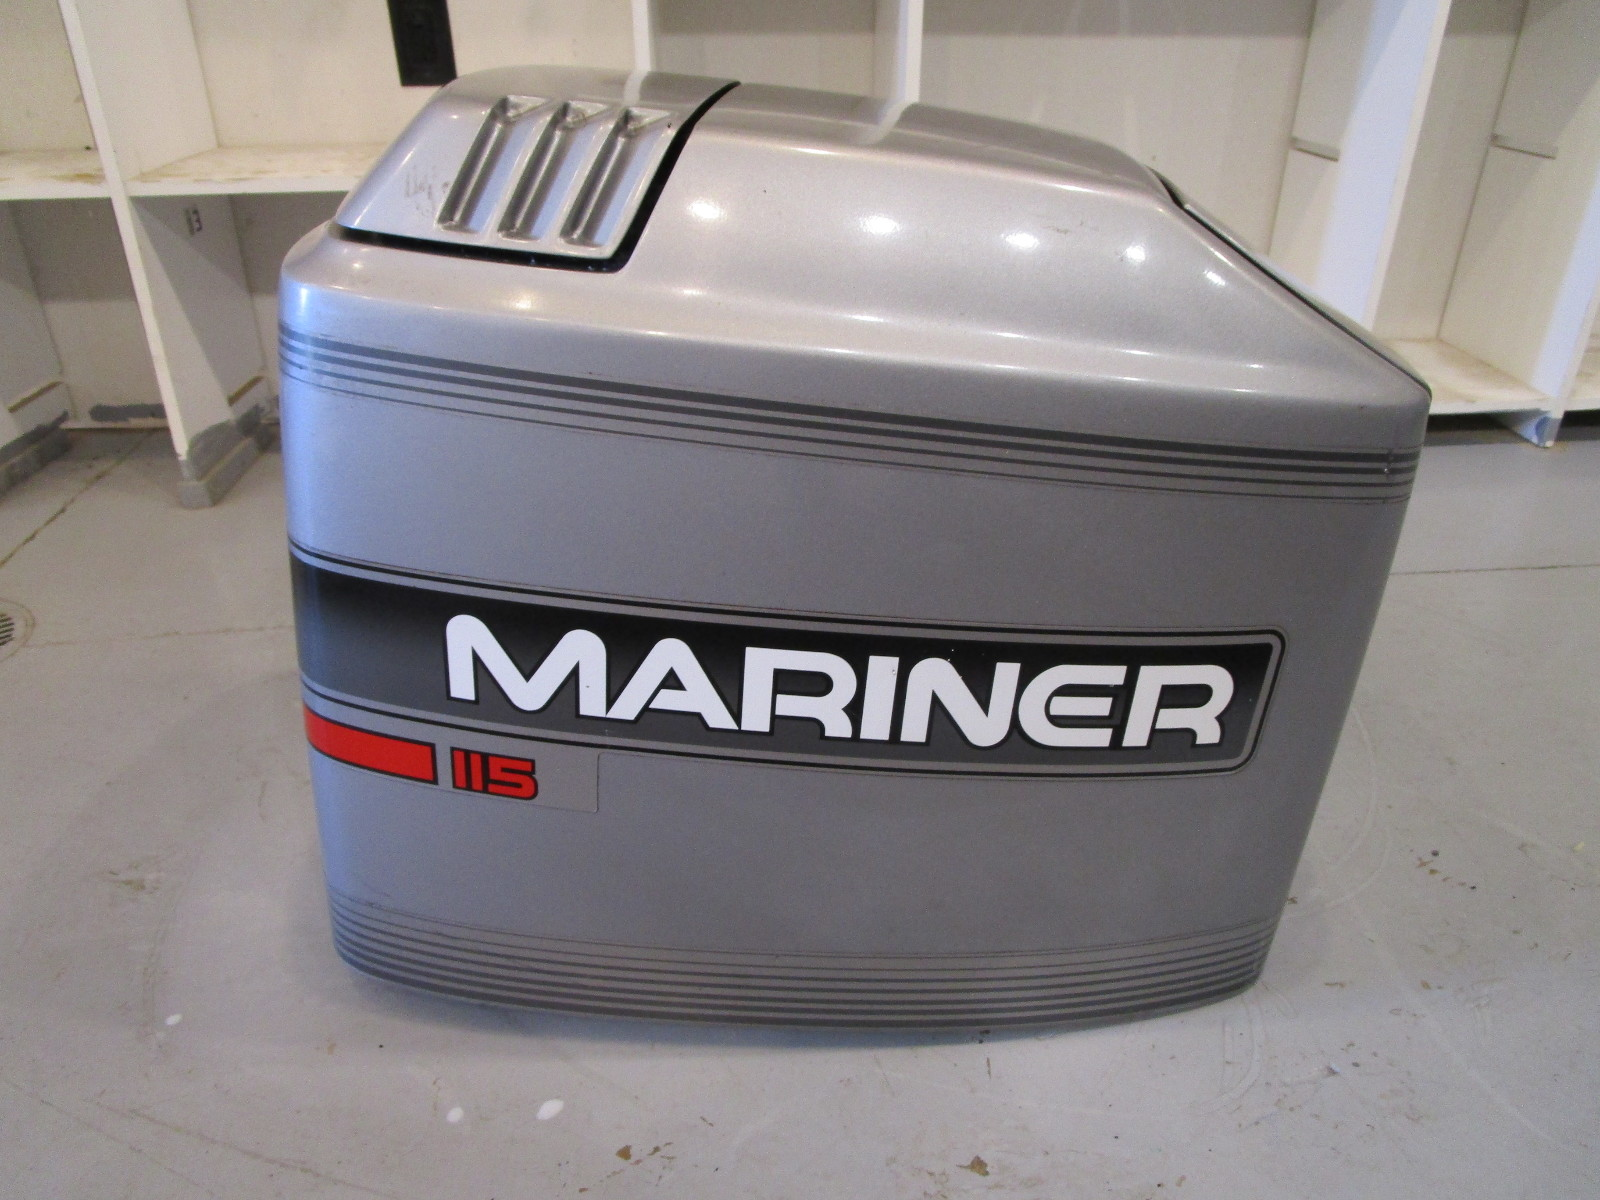 4026-828354A12 Mercury Mariner Outboard 115 HP 4 Cyl Top Cowl Engine Motor  Cover